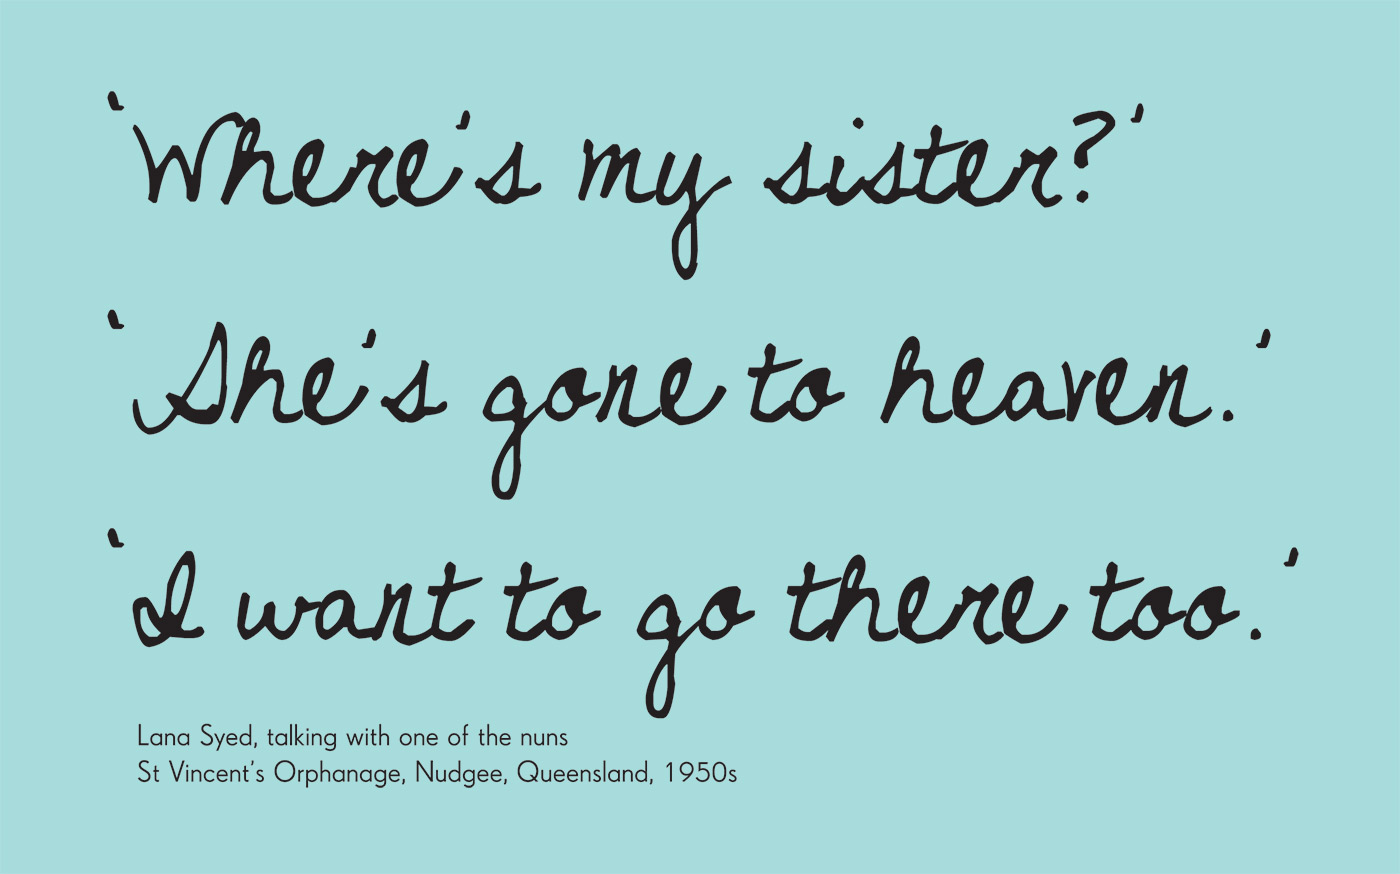 Exhibition graphic panel that reads: 'Where's my sister? / She's gone to heaven. / I want to go there too' attributed to 'Lana Syed, talking with one of the nuns, St Vincent's Orphanage, Nudgee, Queensland, 1950s'. - click to view larger image